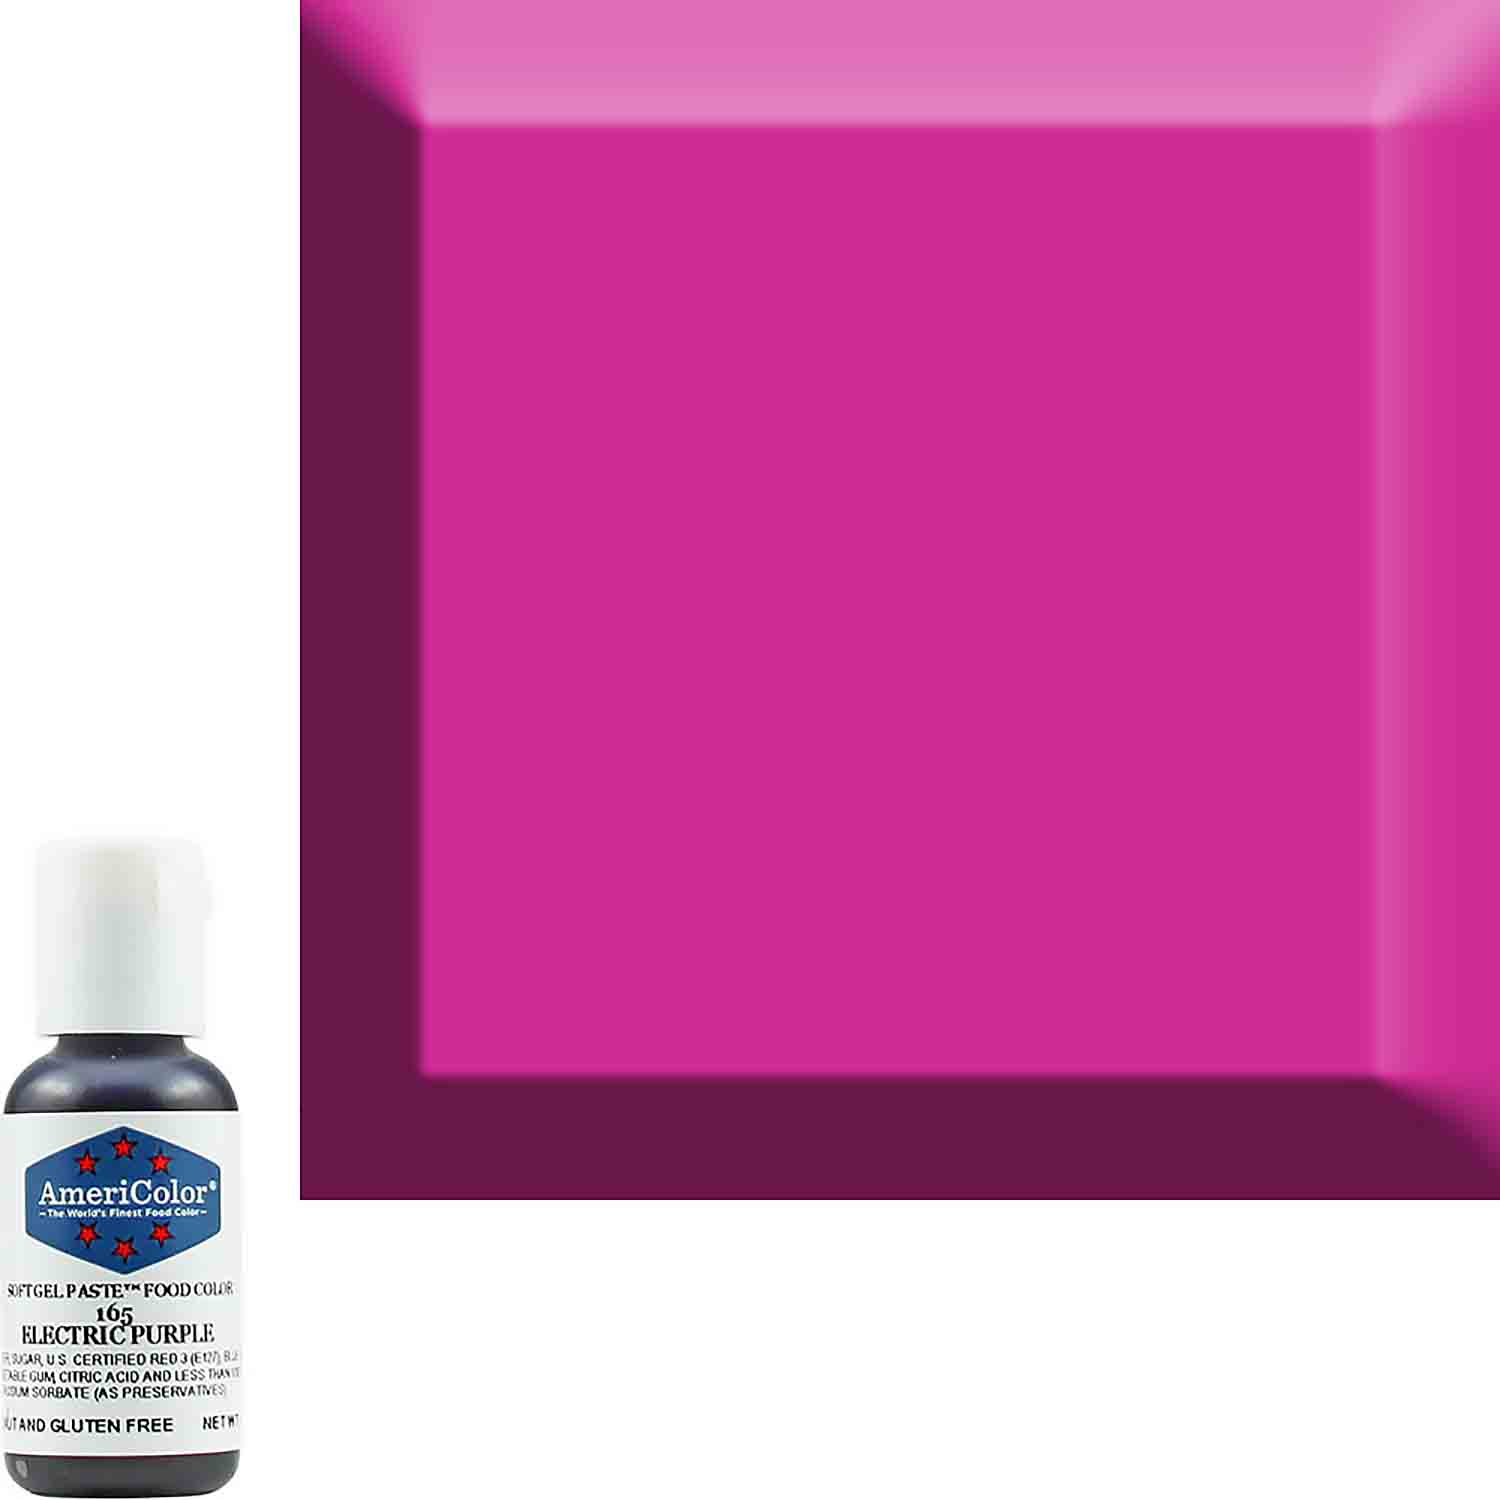 Neon/Electric Purple Soft Gel Paste™ Food Color